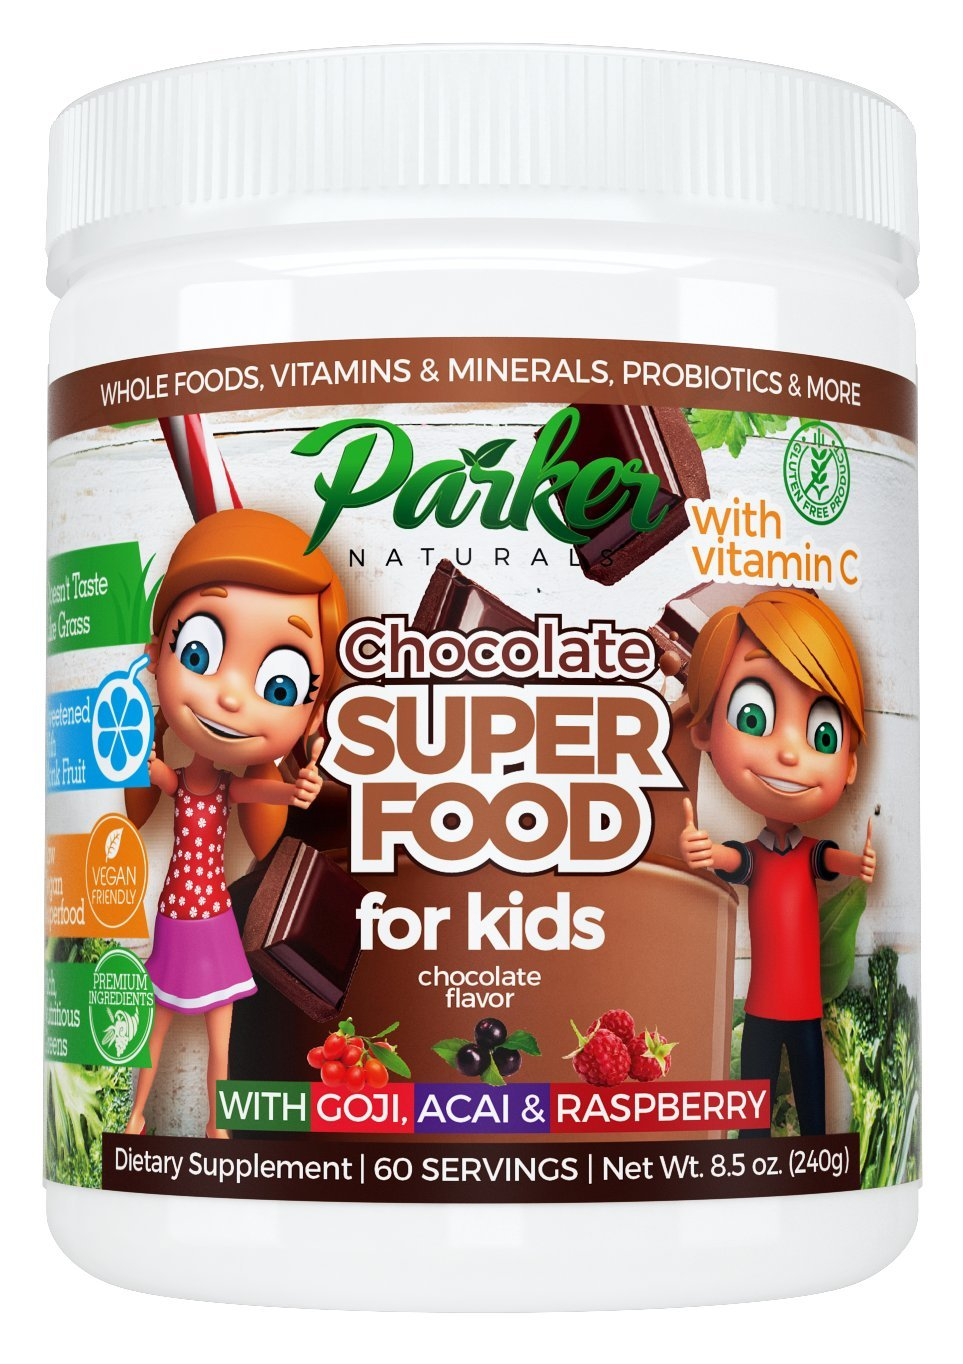 Berry Green Chocolate Superfood Powder 60 Servings for Kids with Organic Greens & Fruits, Enzymes, Probiotics, Antioxidants, Vitamins, Minerals, Vitamin C - Non GMO, Vegan & Gluten Free